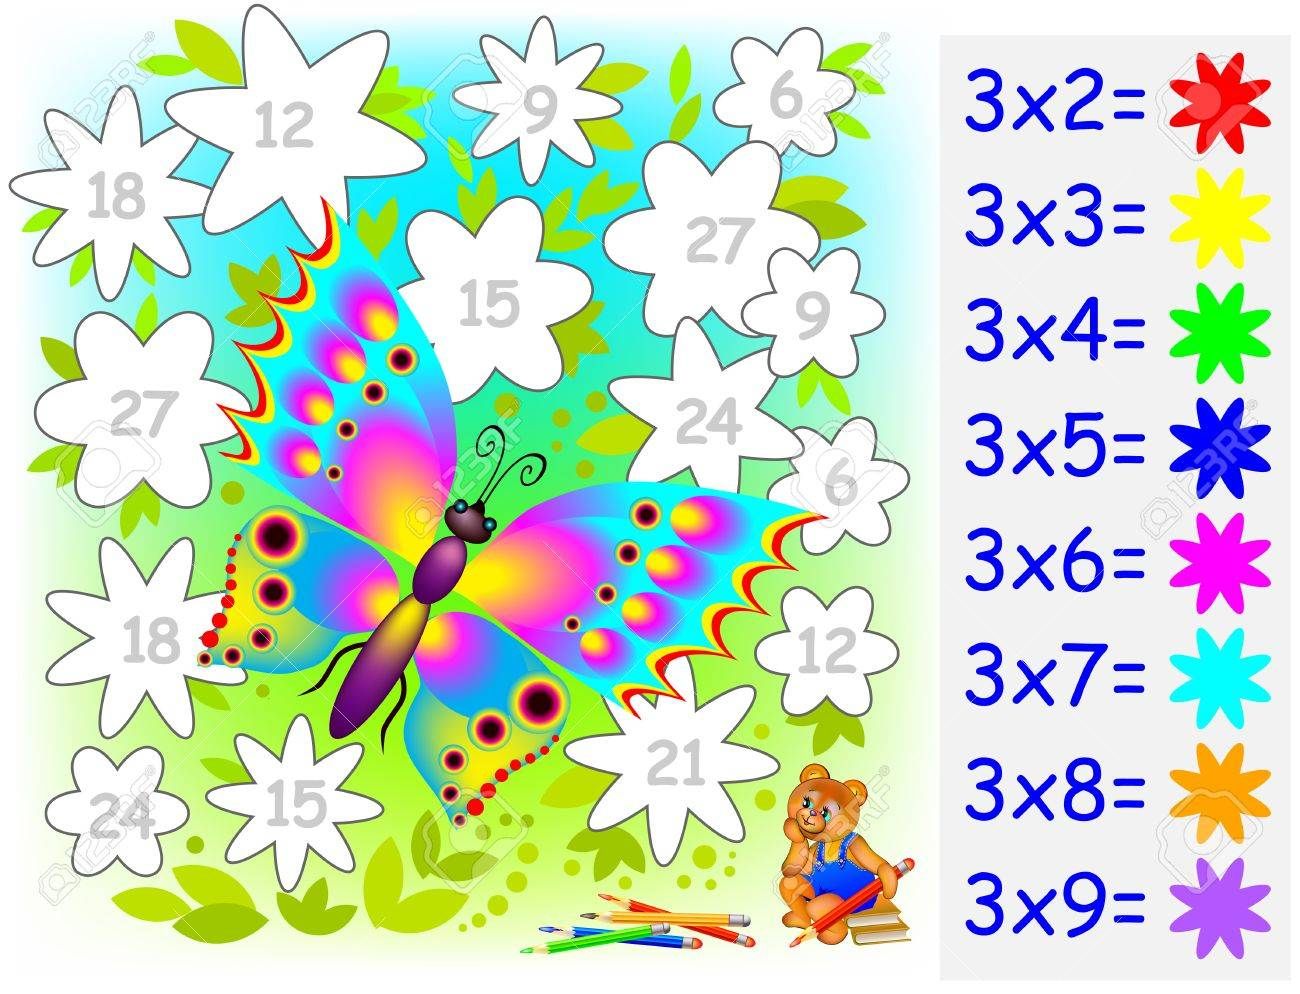 Worksheet With Exercises For Children With Multiplication By ...